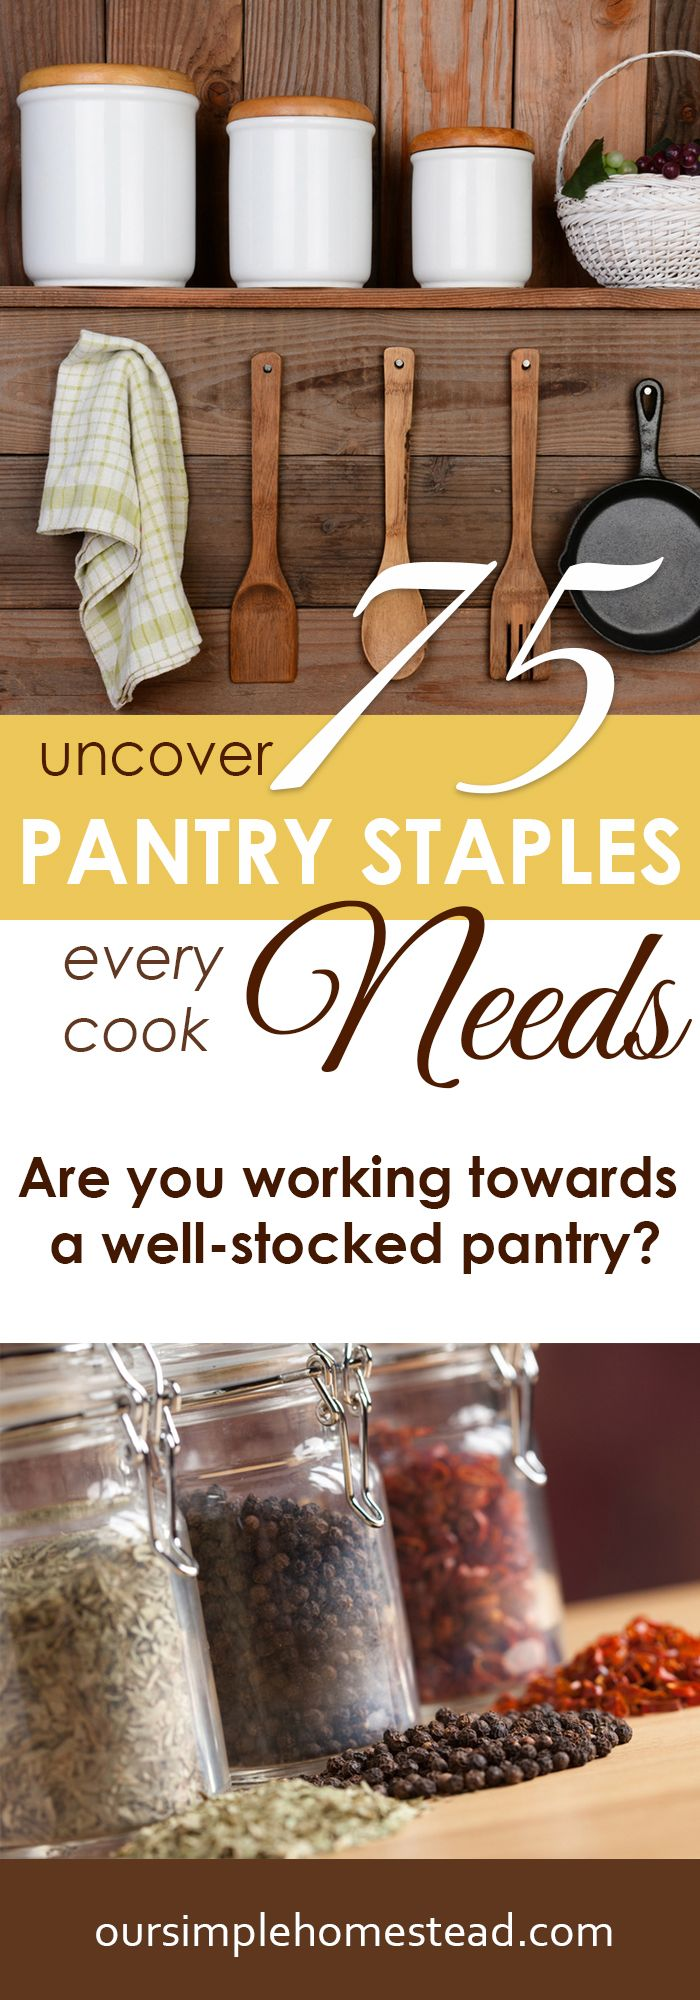 75 Pantry Staples Every Cook Needs - Spending time in the kitchen is so much more enjoyable if you have all the pantry staples you need at your fingertips. Making sure you have a well-stocked pantry will make whipping up a healthy meal for your family quick and easy.